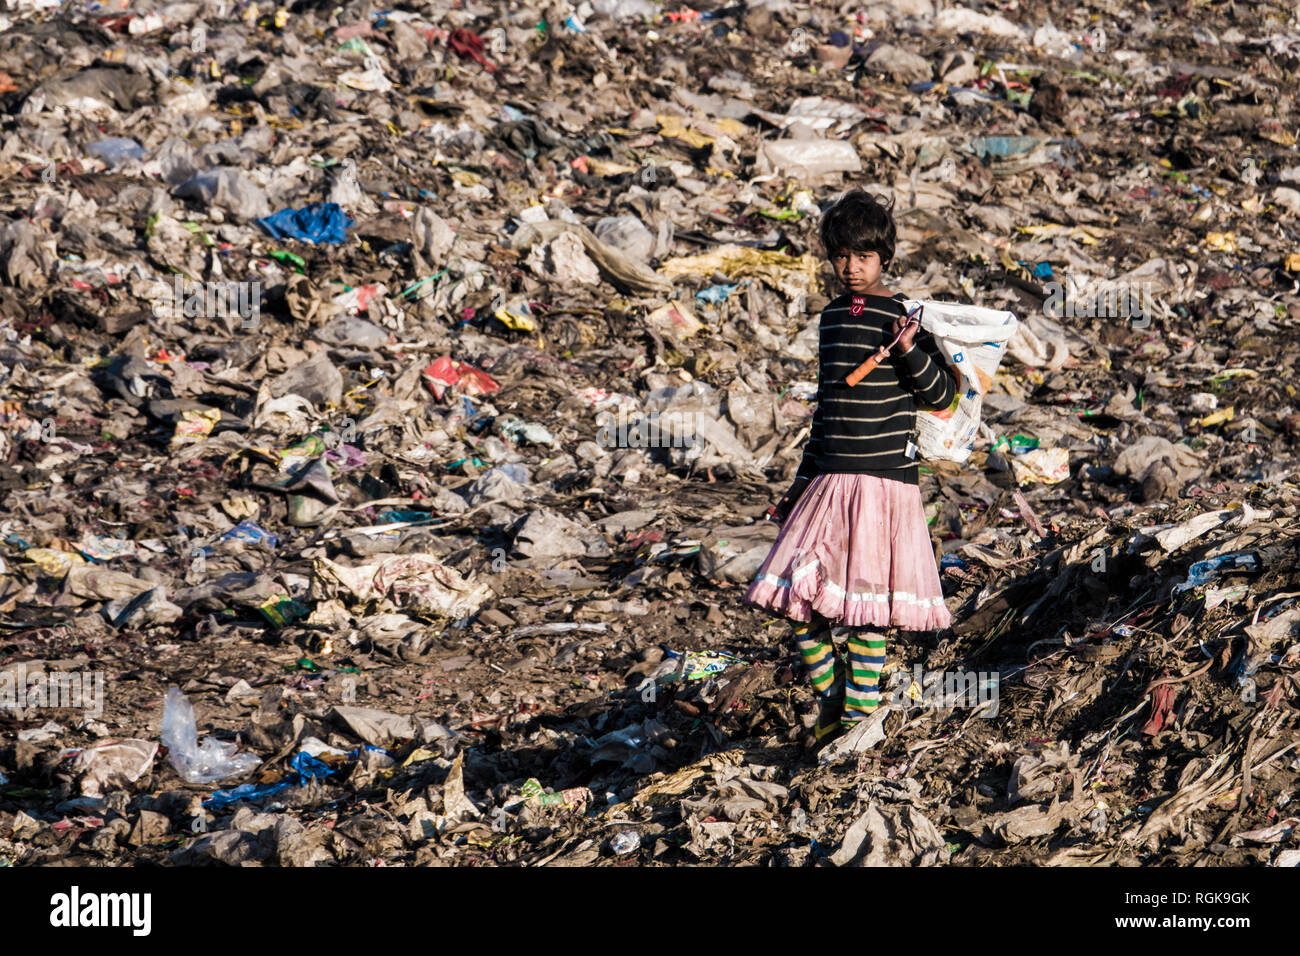 Young girl collecting recycling materials at rubbish dump in Uttarakhand, India - Stock Image